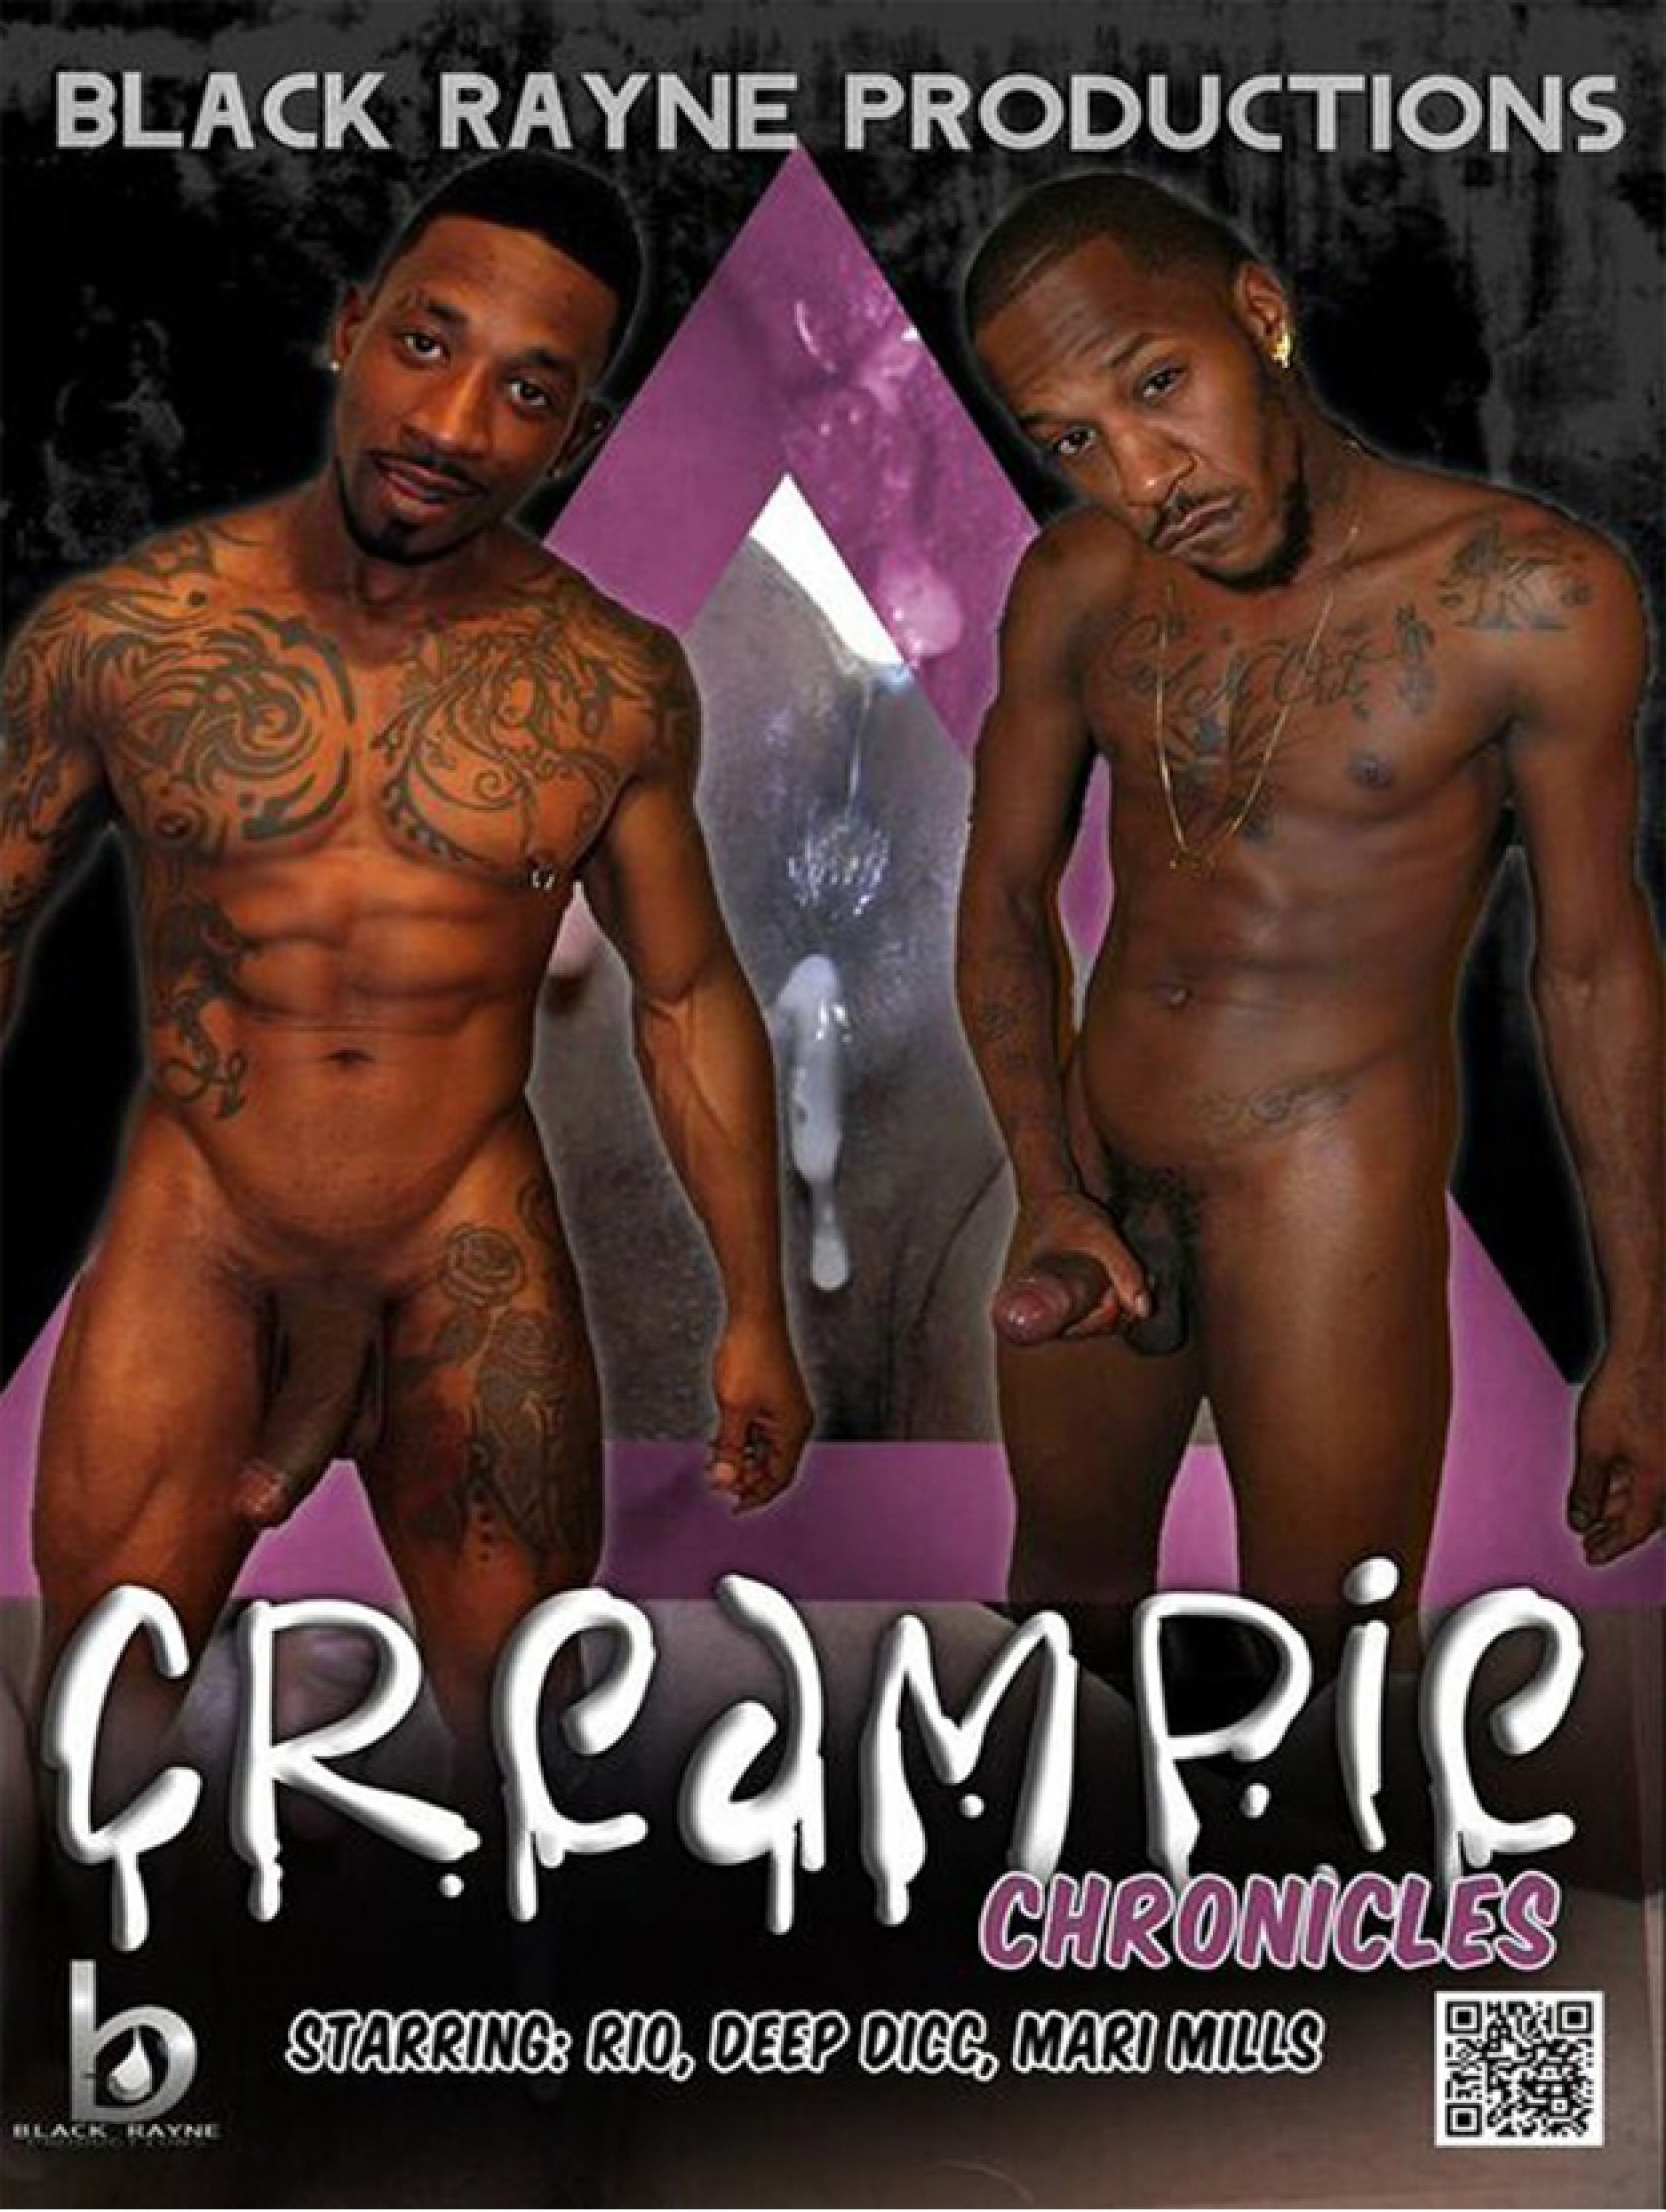 Creampie Chronicles